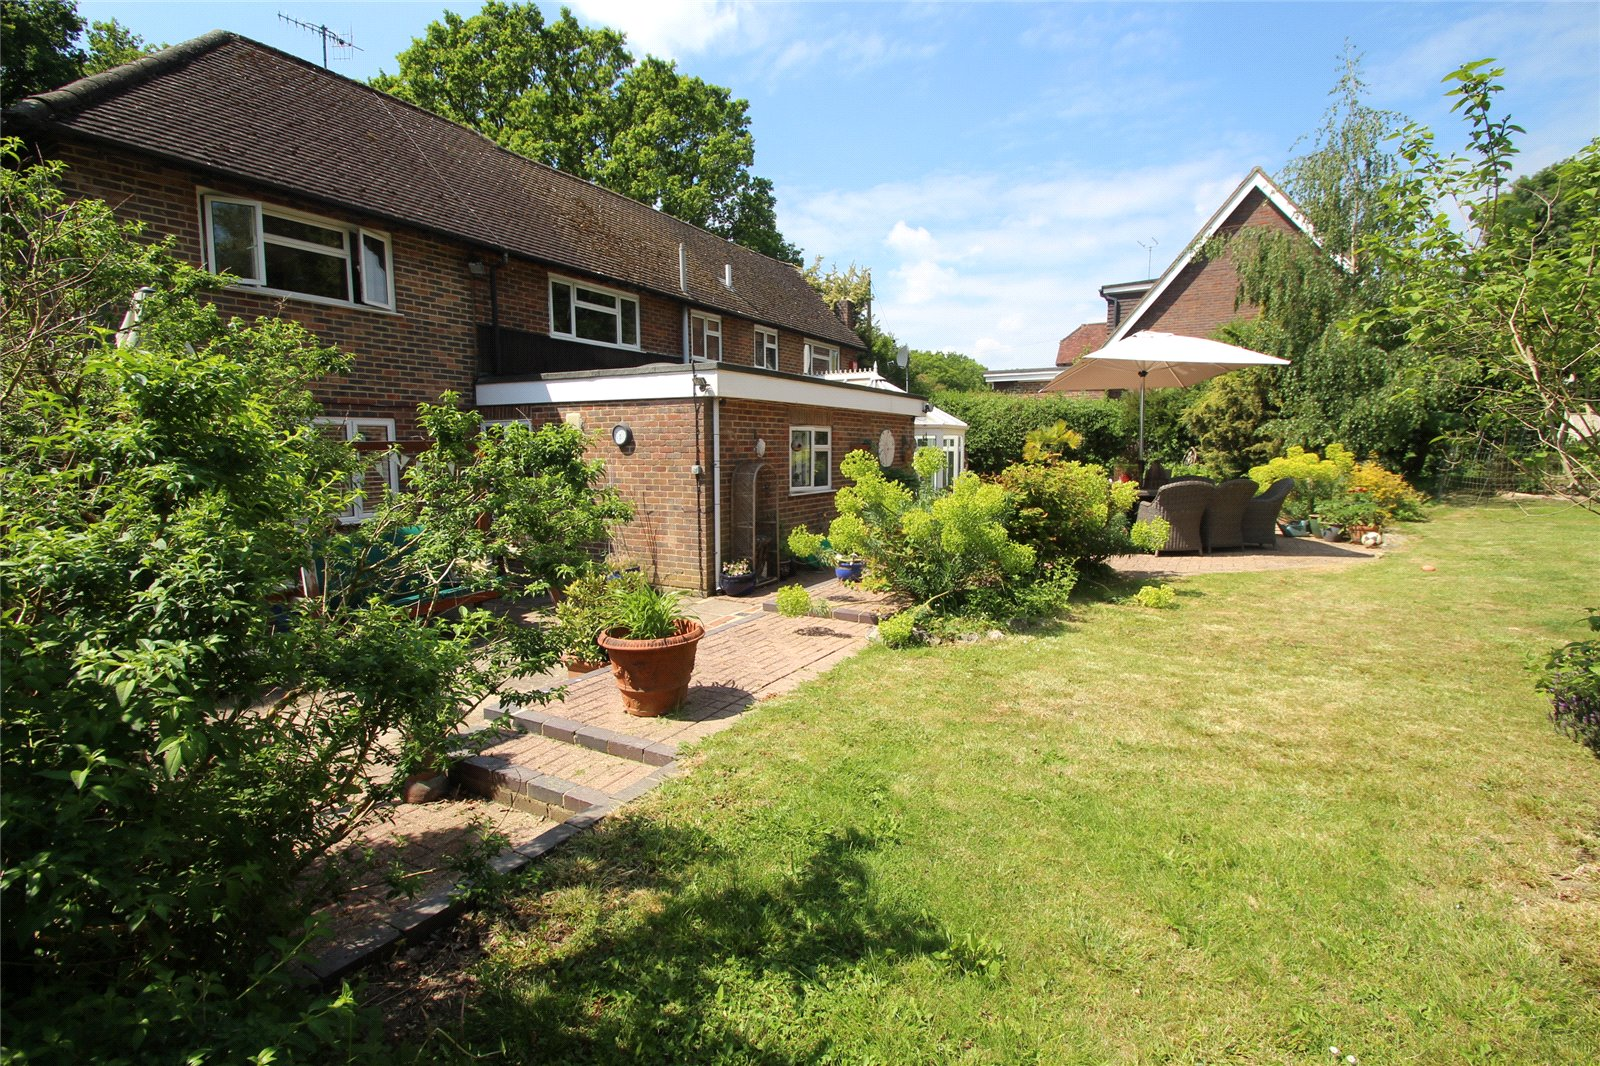 Little Browns Lane, Edenbridge - £800,000